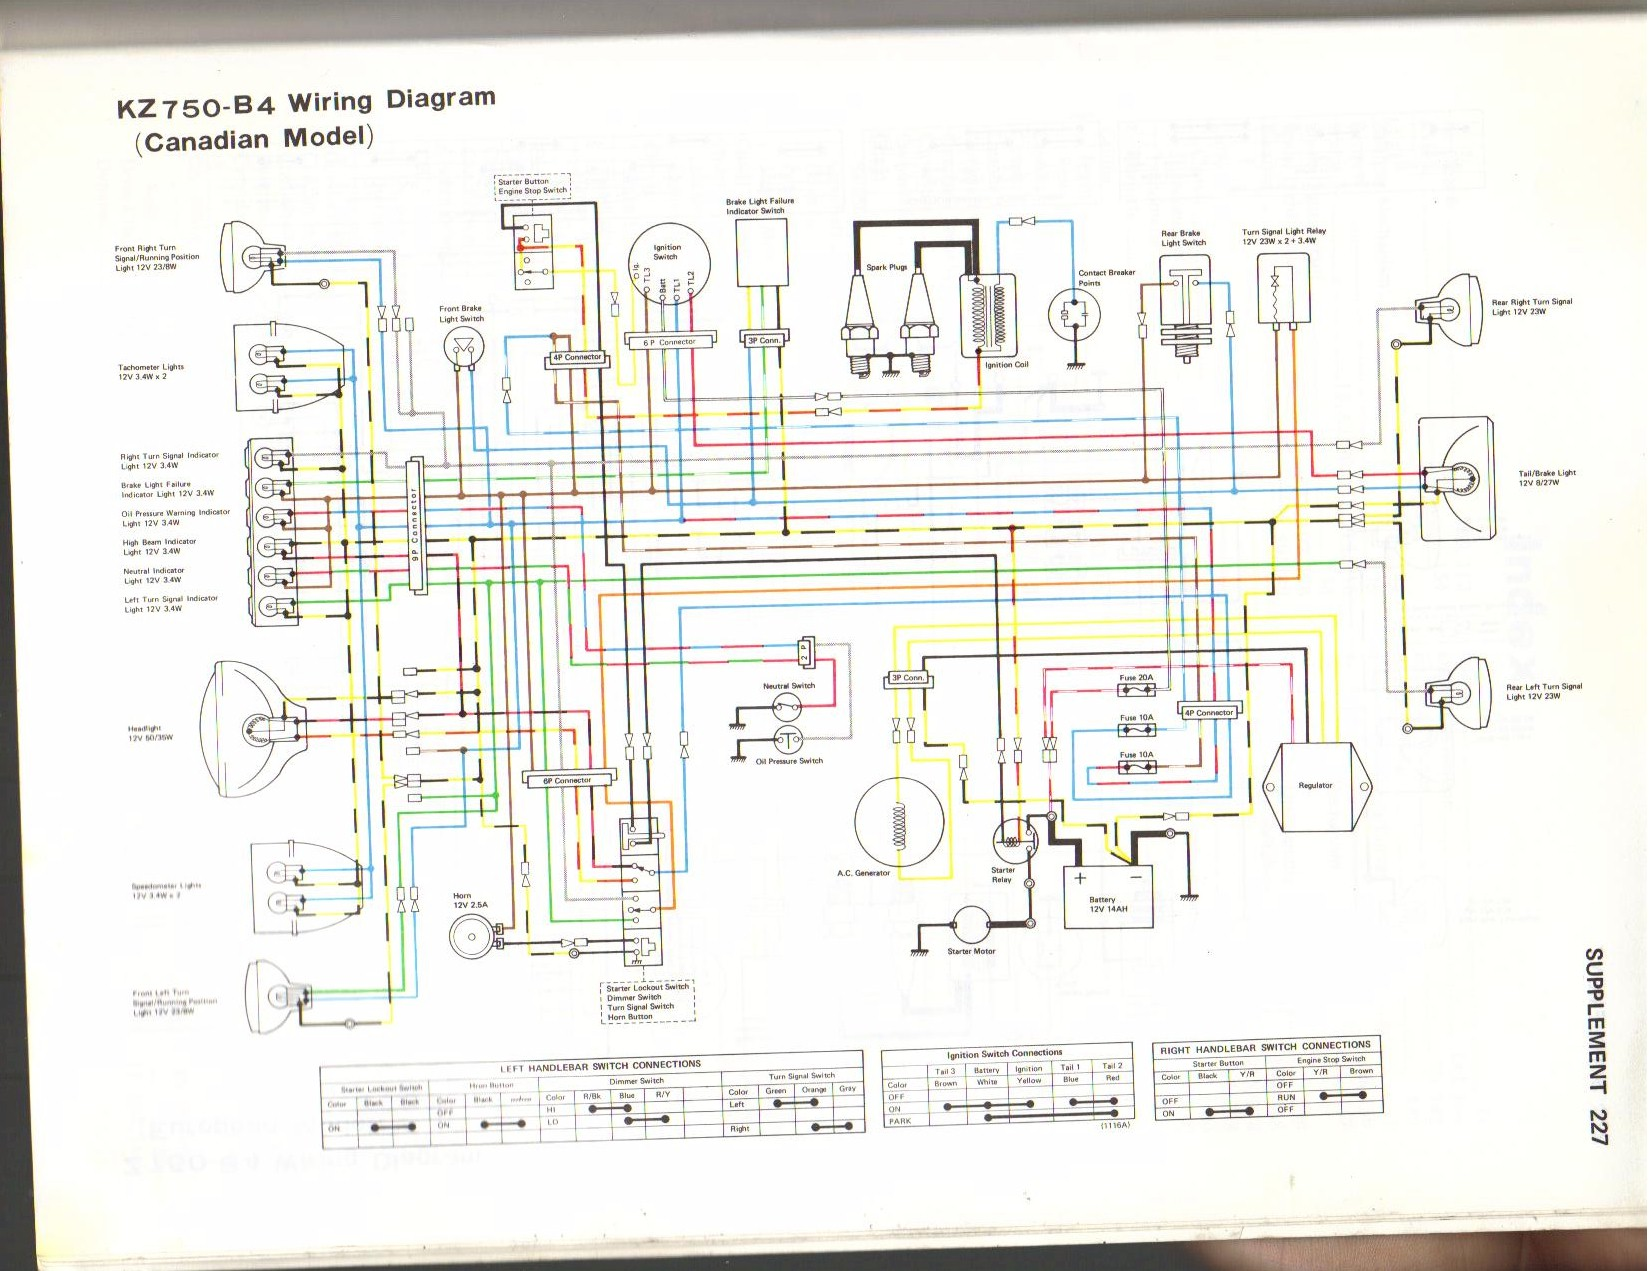 86 Trans Am Wiring Diagram Library 1982 Honda Cb750 1980 Kz750 Four House Symbols U2022 Rh Maxturner Co